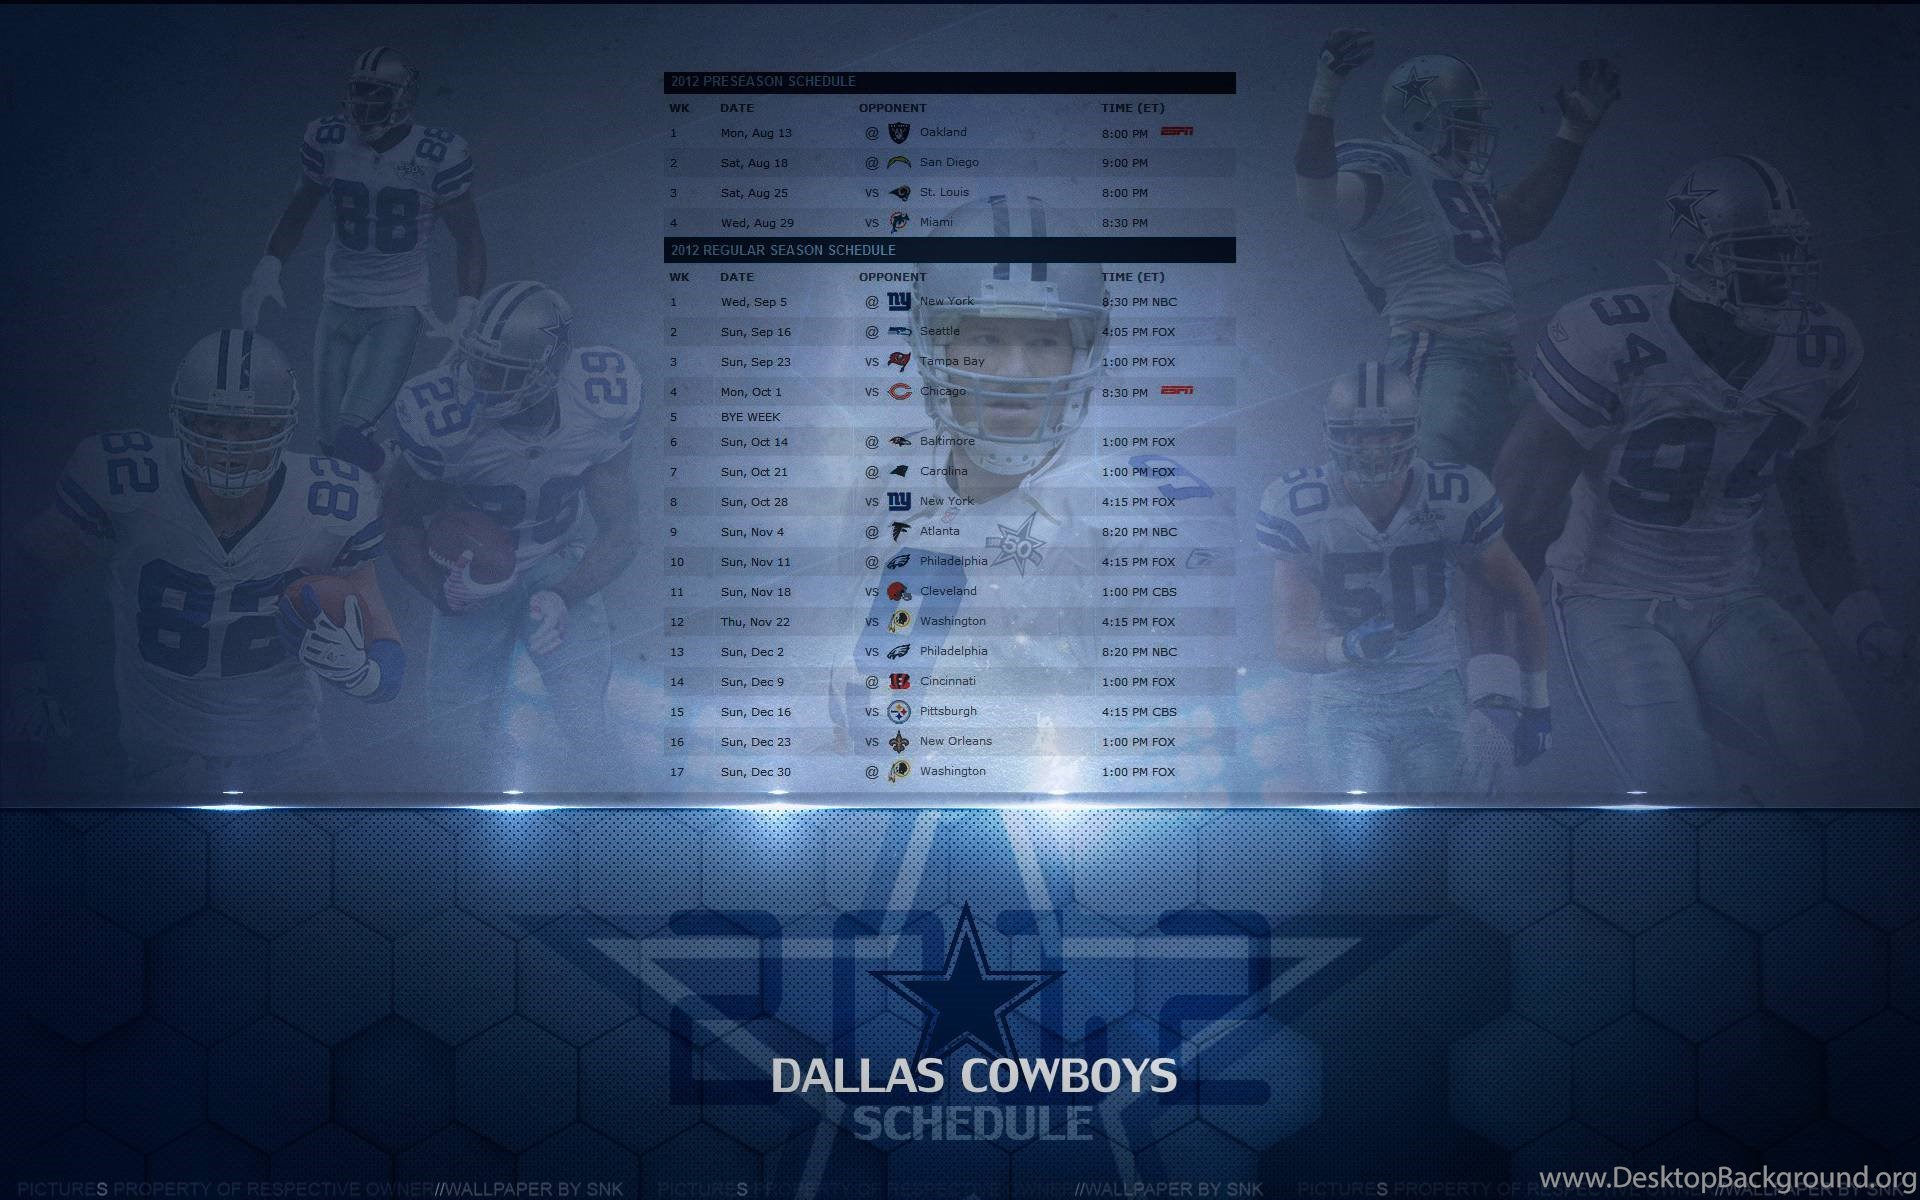 dallas cowboys schedule wallpapers 2015 images desktop background